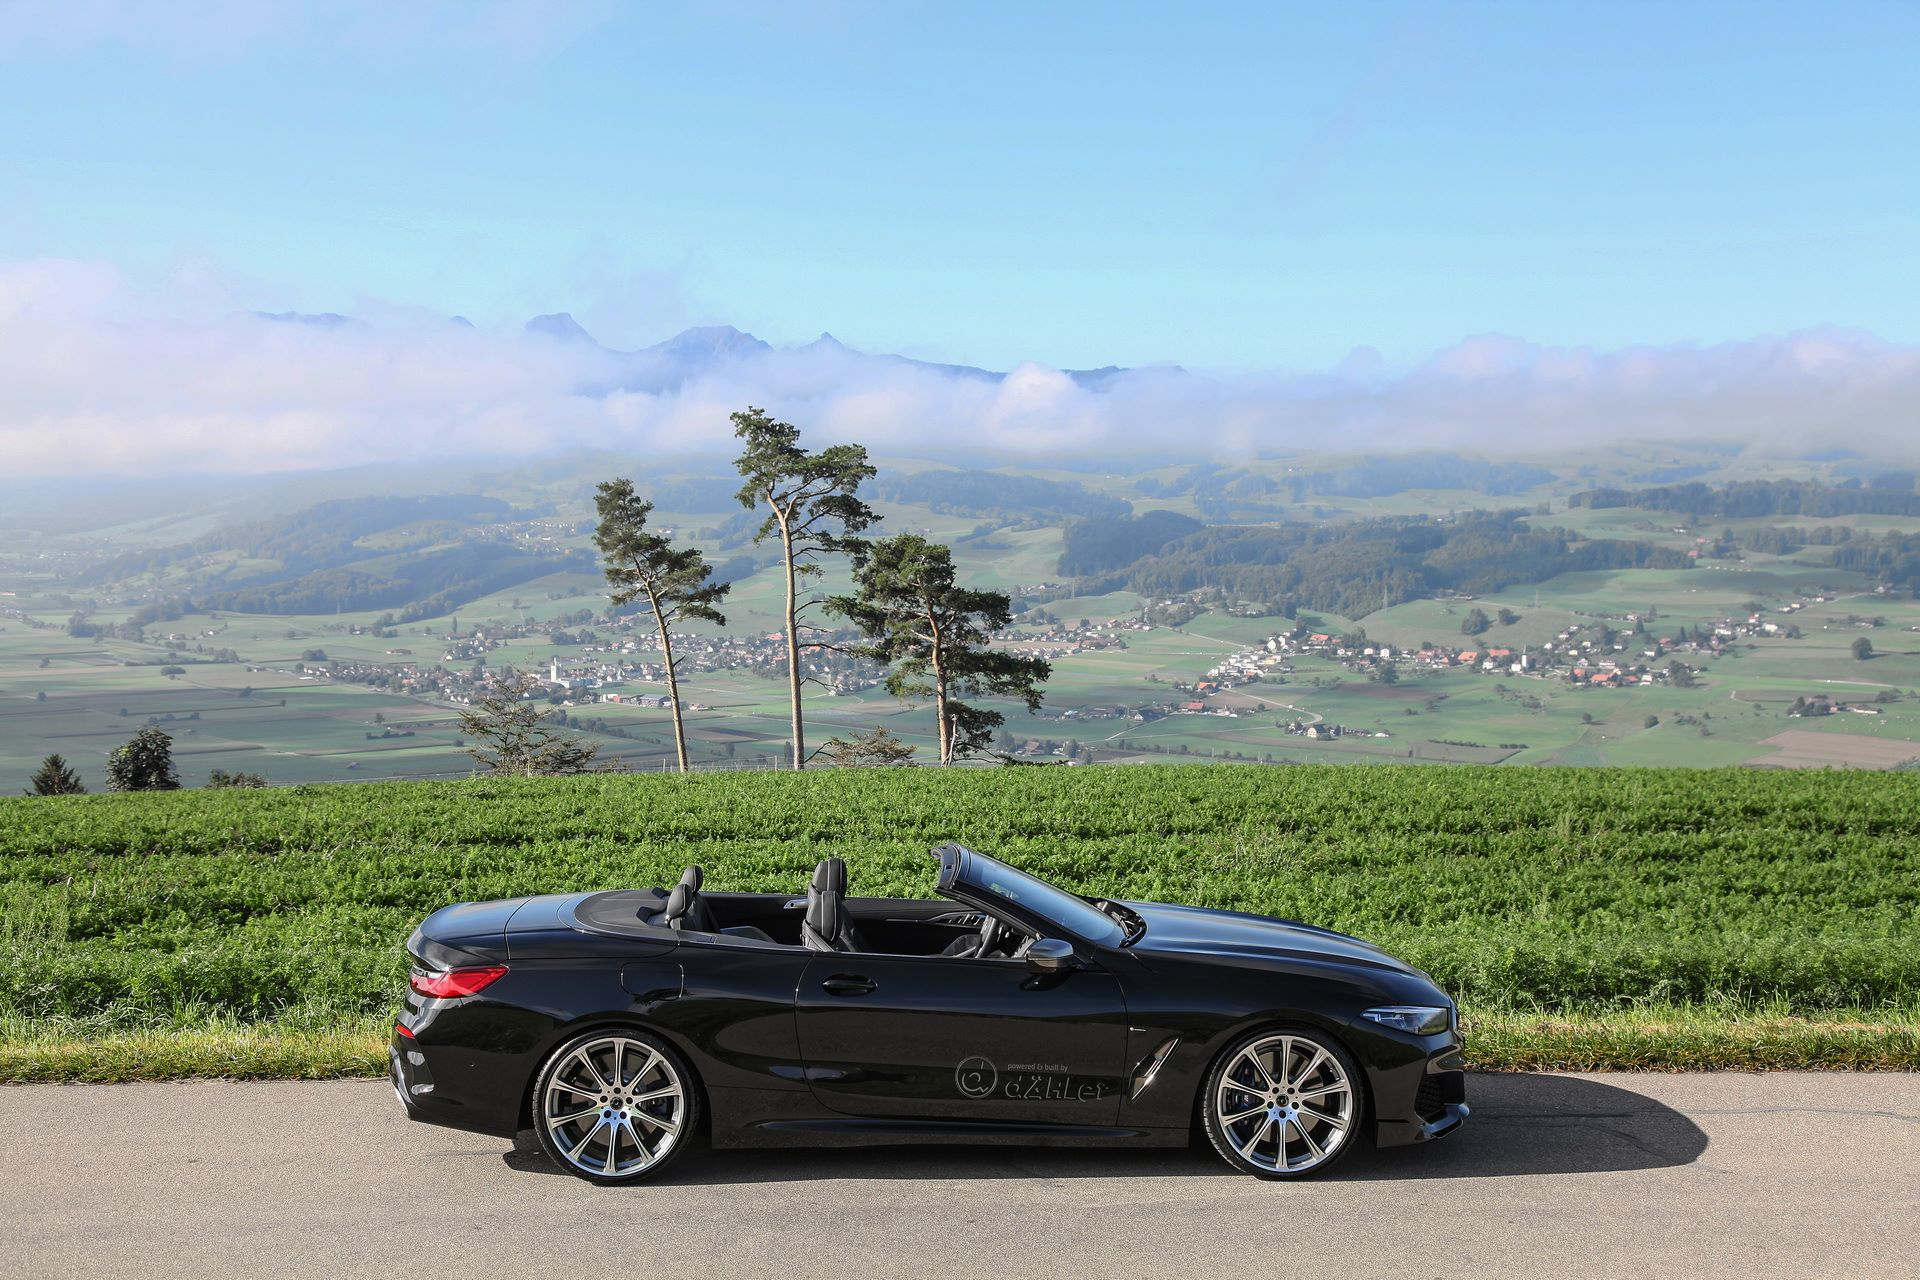 BMW-M850i-convertible-by-Dahler-3